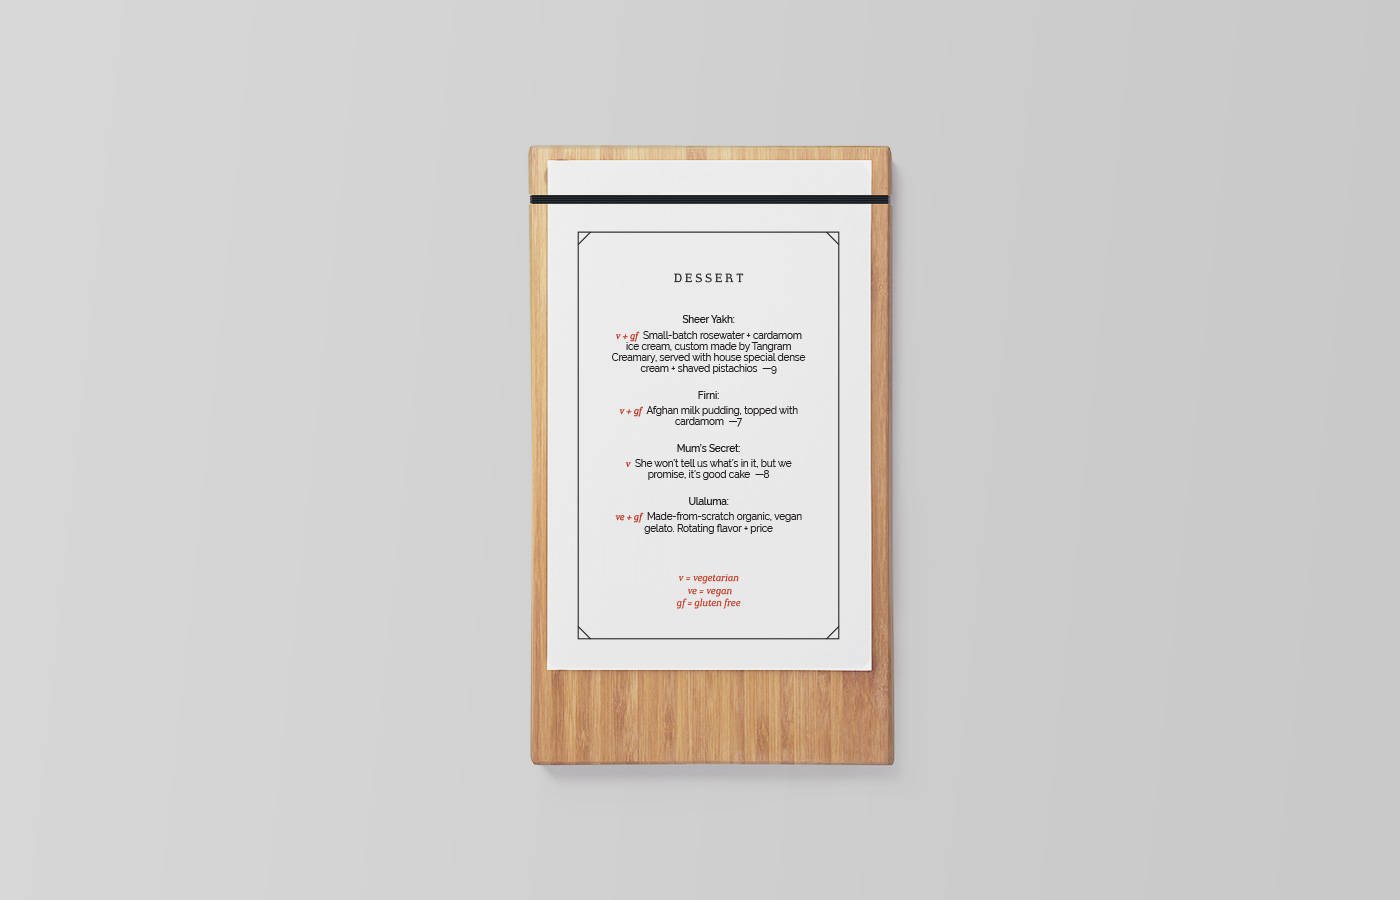 covetdesign_logo-design_branding_package-design_graphic-designer_vancouver_work_wide_afghankitchen-menu-dessert